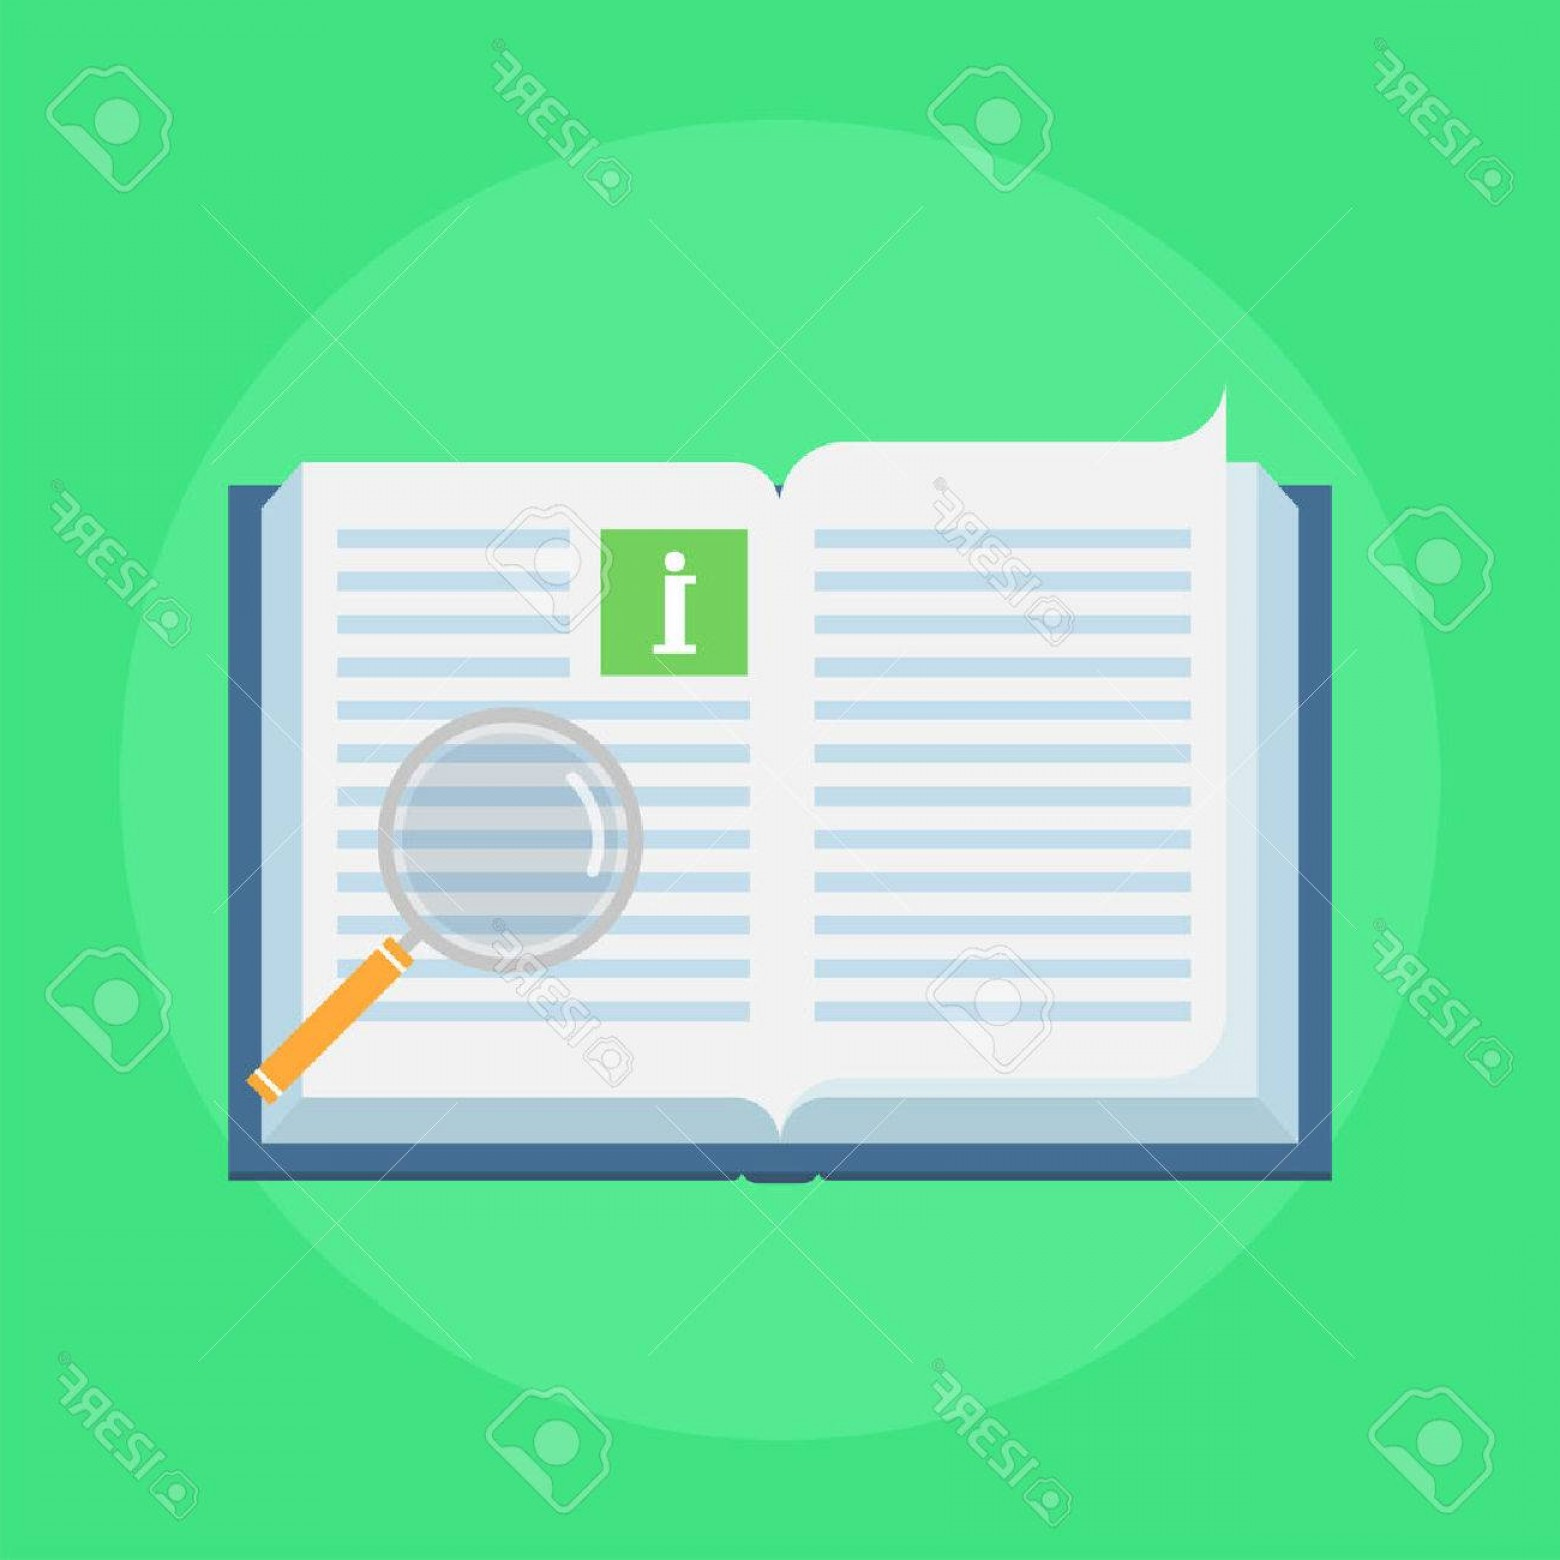 Open Book Vector Flat: Photostock Vector Manual Book Vector Icon In Flat Style Concept User Manual Isolated On Colored Background Illustratio